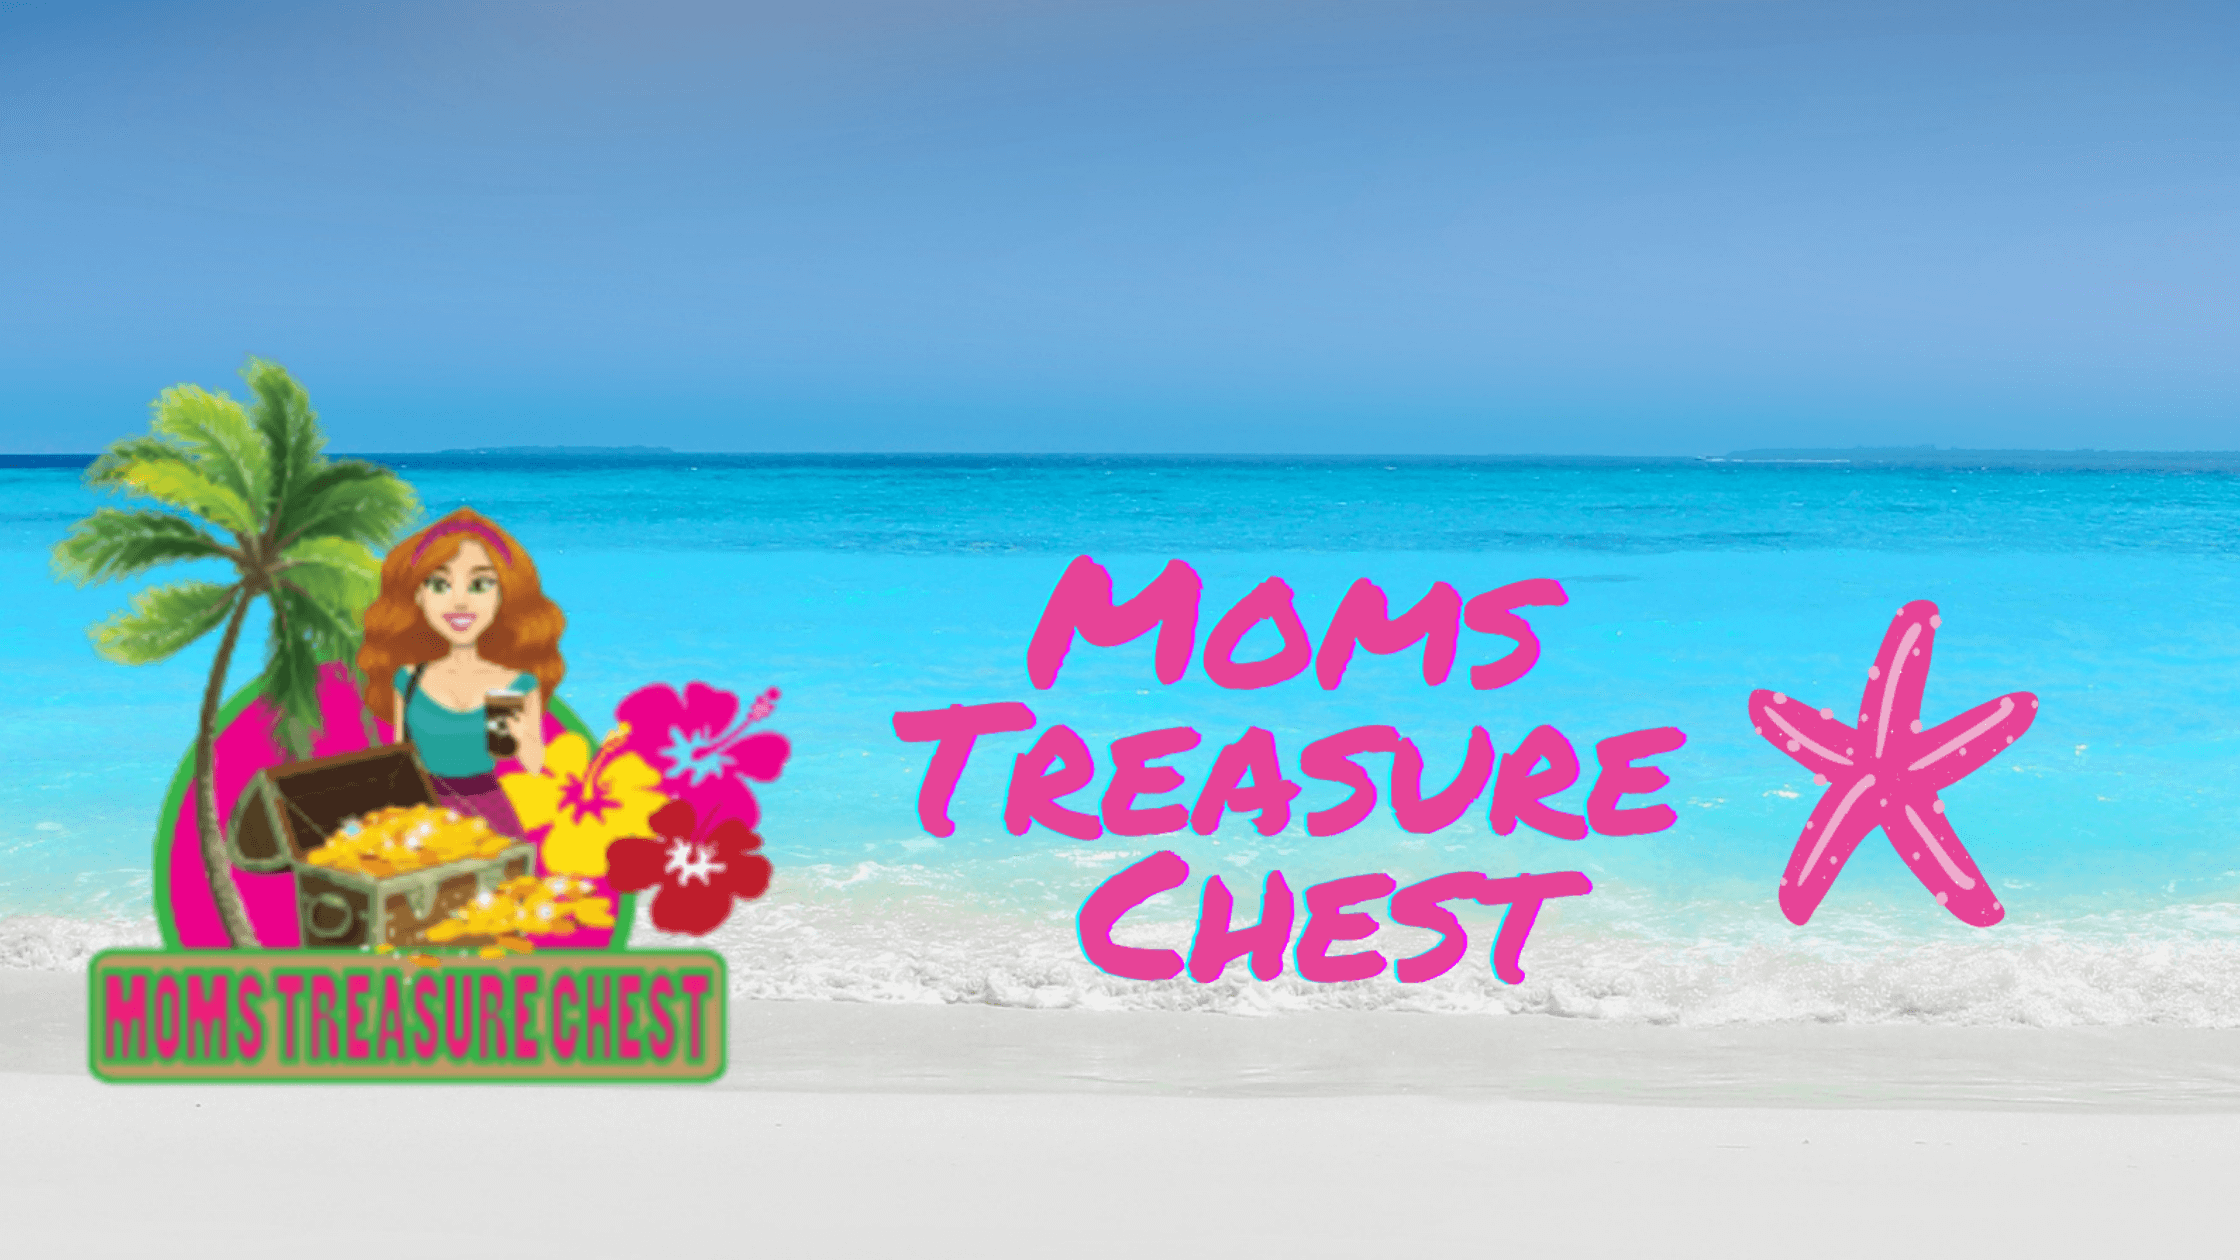 Moms Treasure Chest